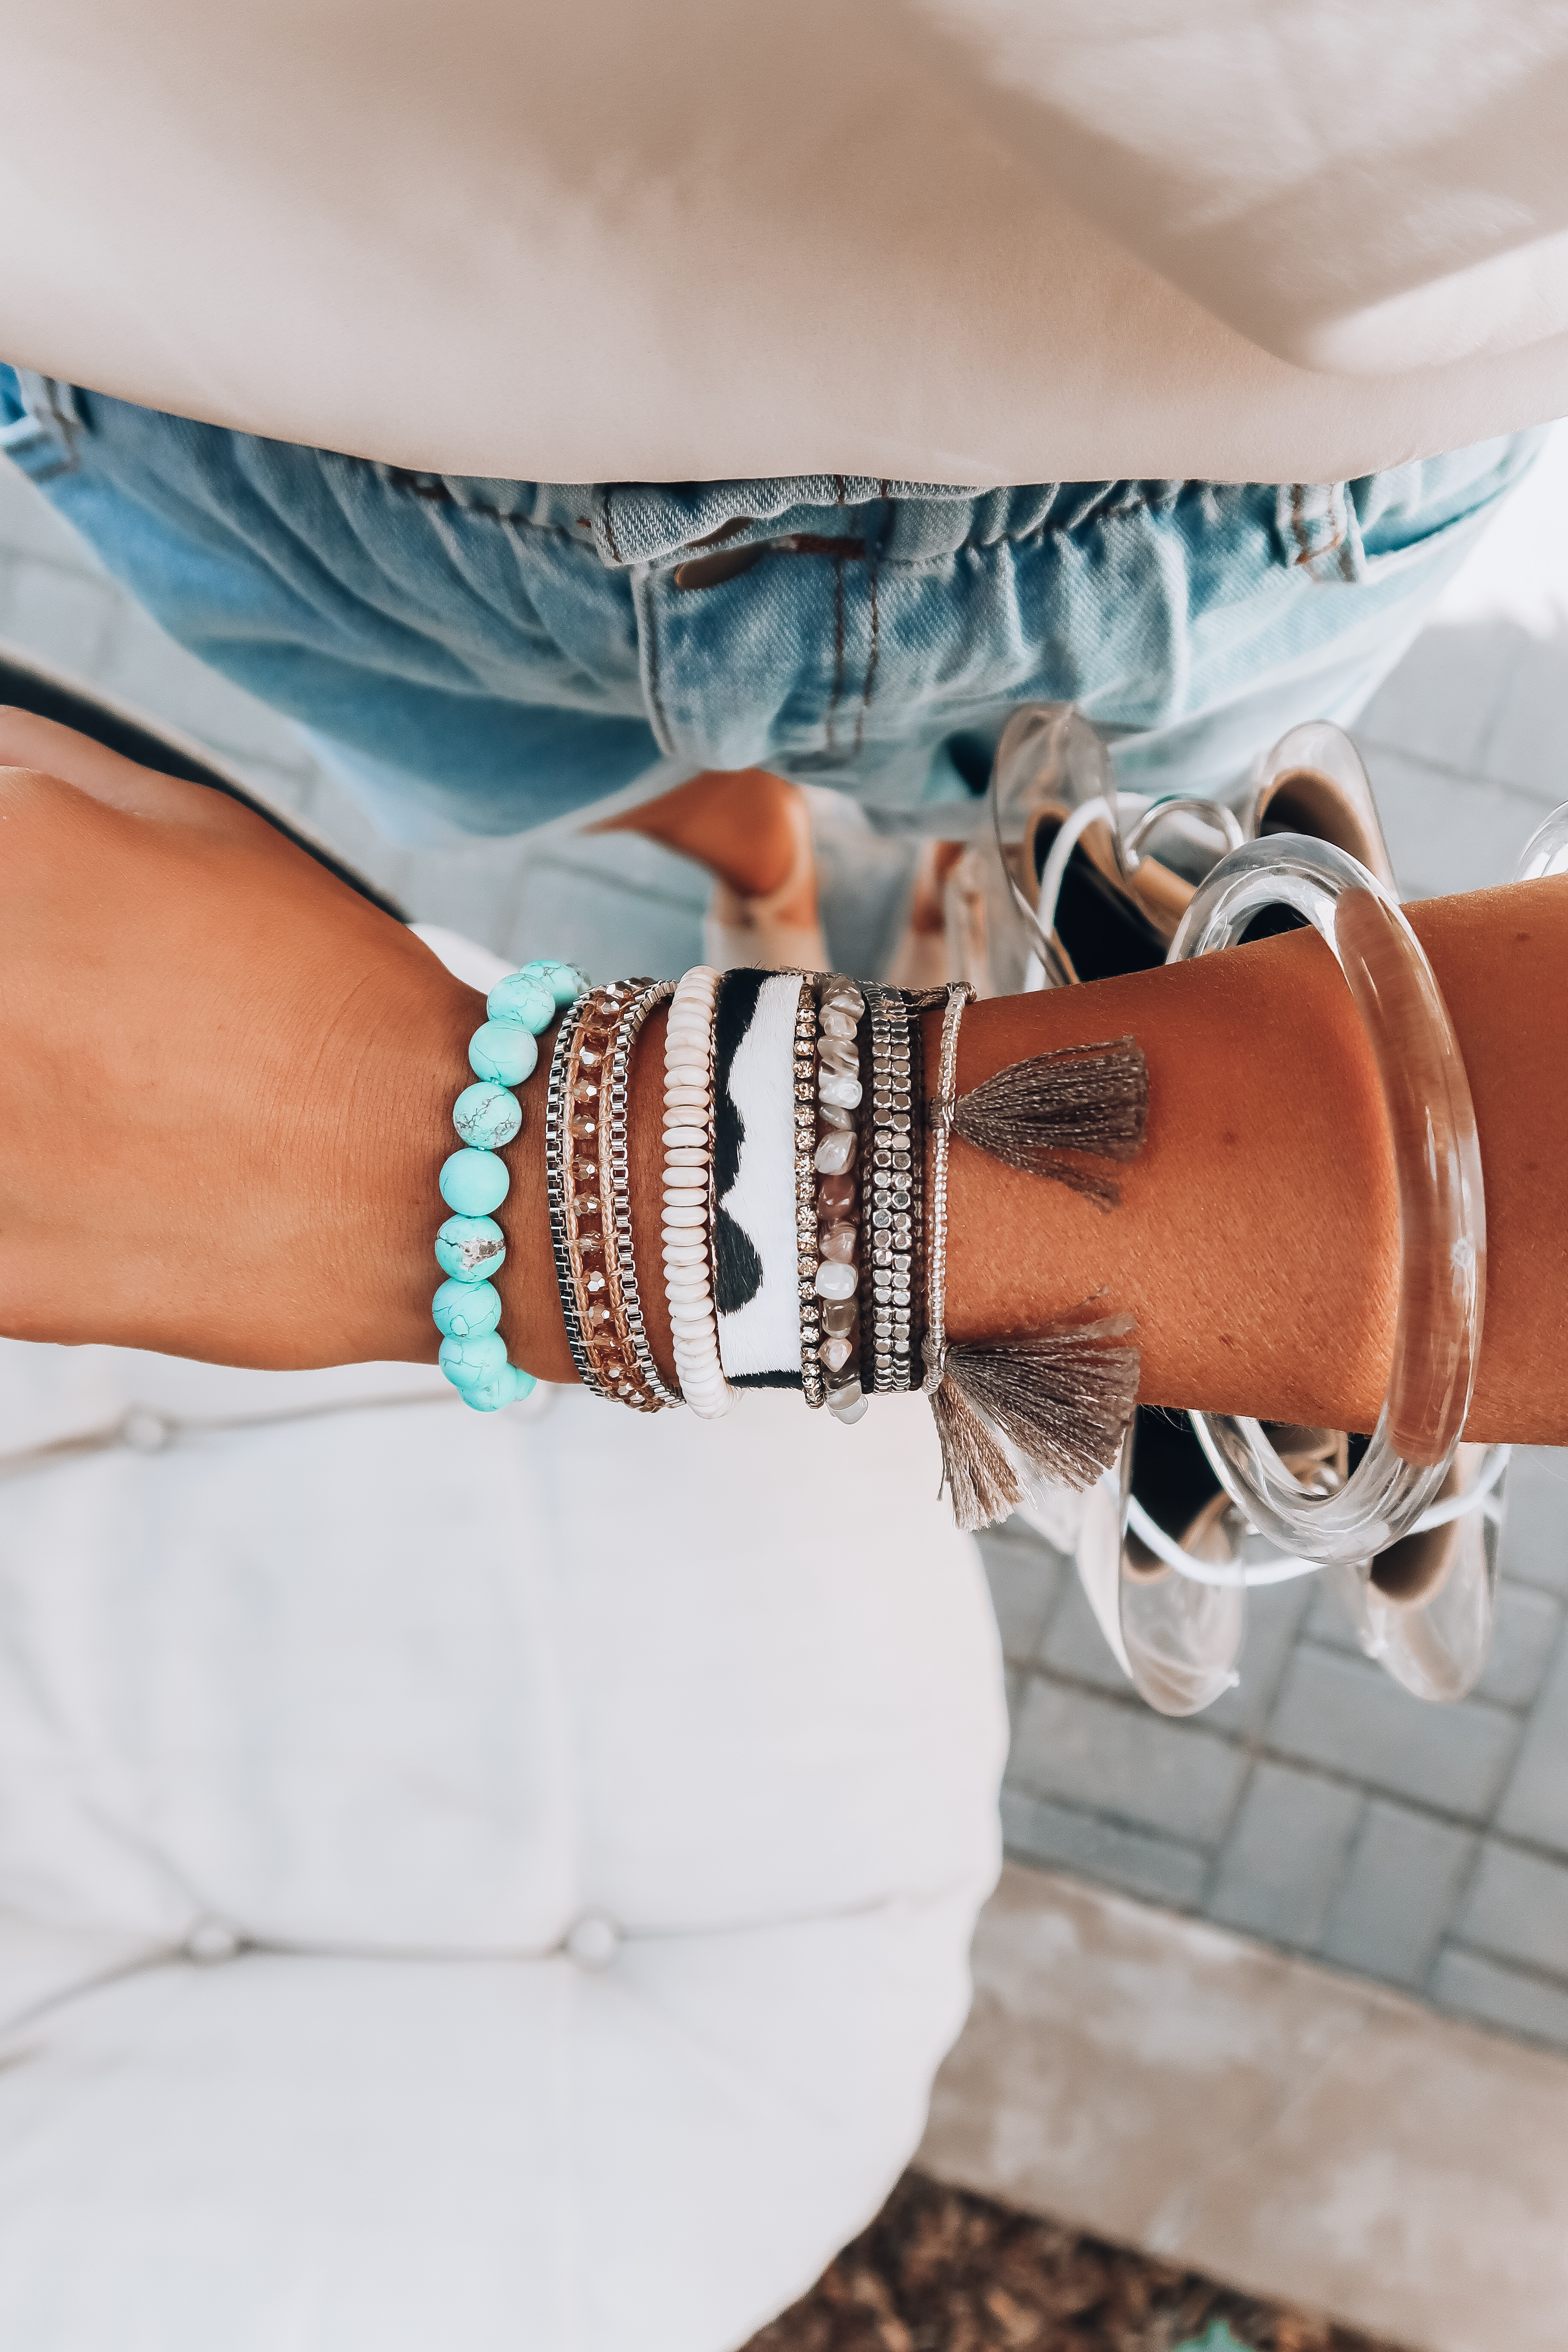 Spring 2019 Bracelets | My Arm Stack | Audrey Madison Stowe a fashion and lifestyle blogger